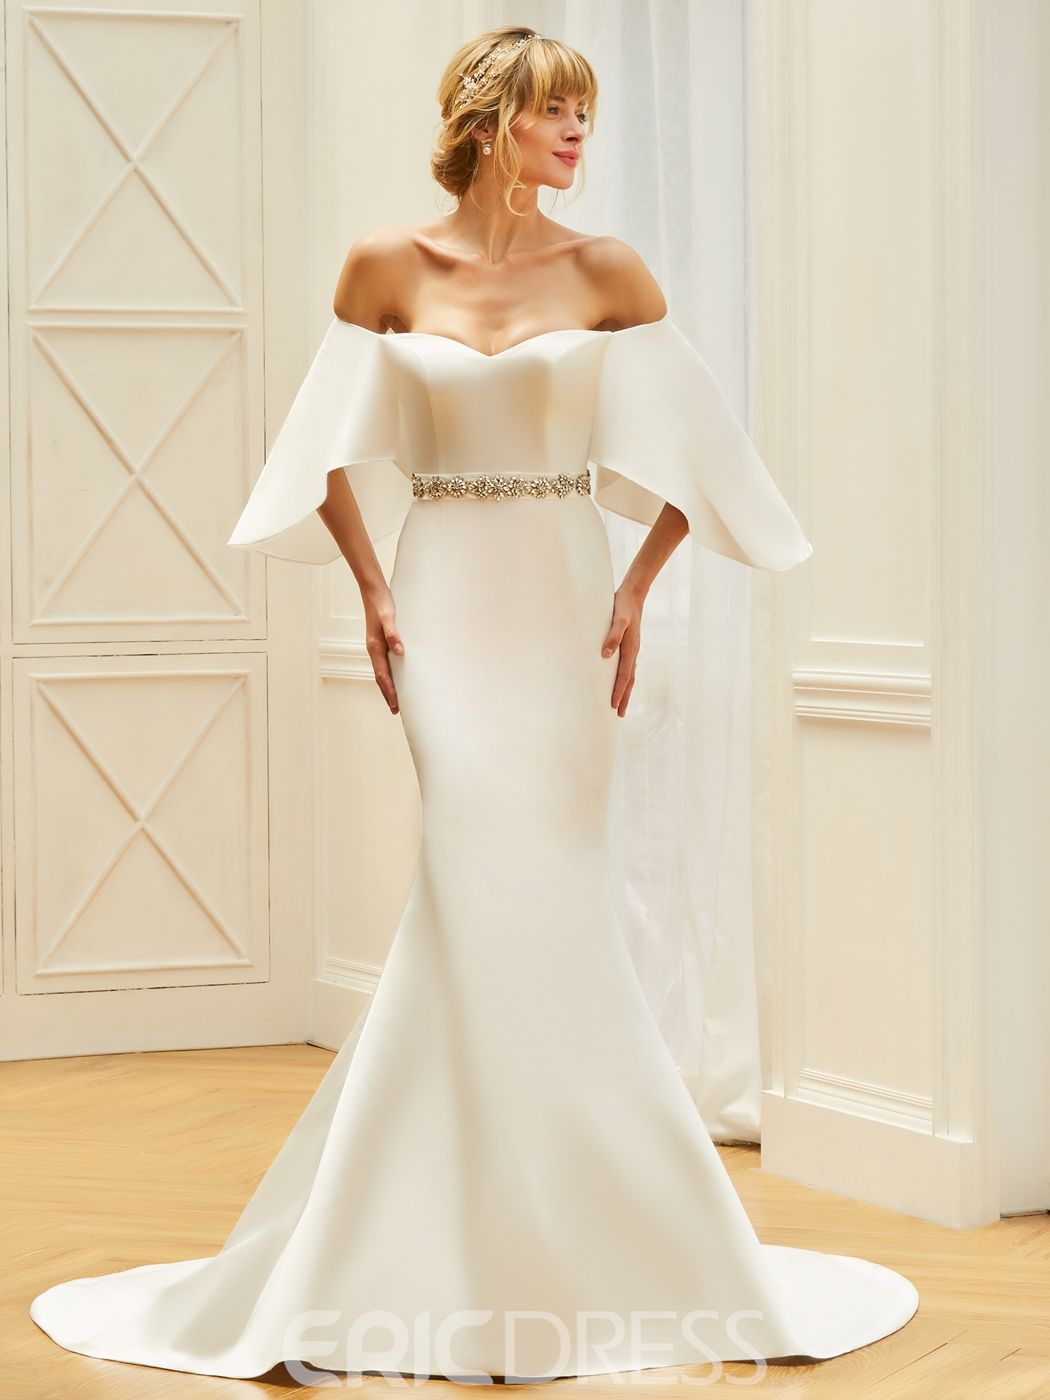 d324d9ba34a ... Dress Plus Size Wedding Dresses Online Shopping. Latest Wedding Dresses